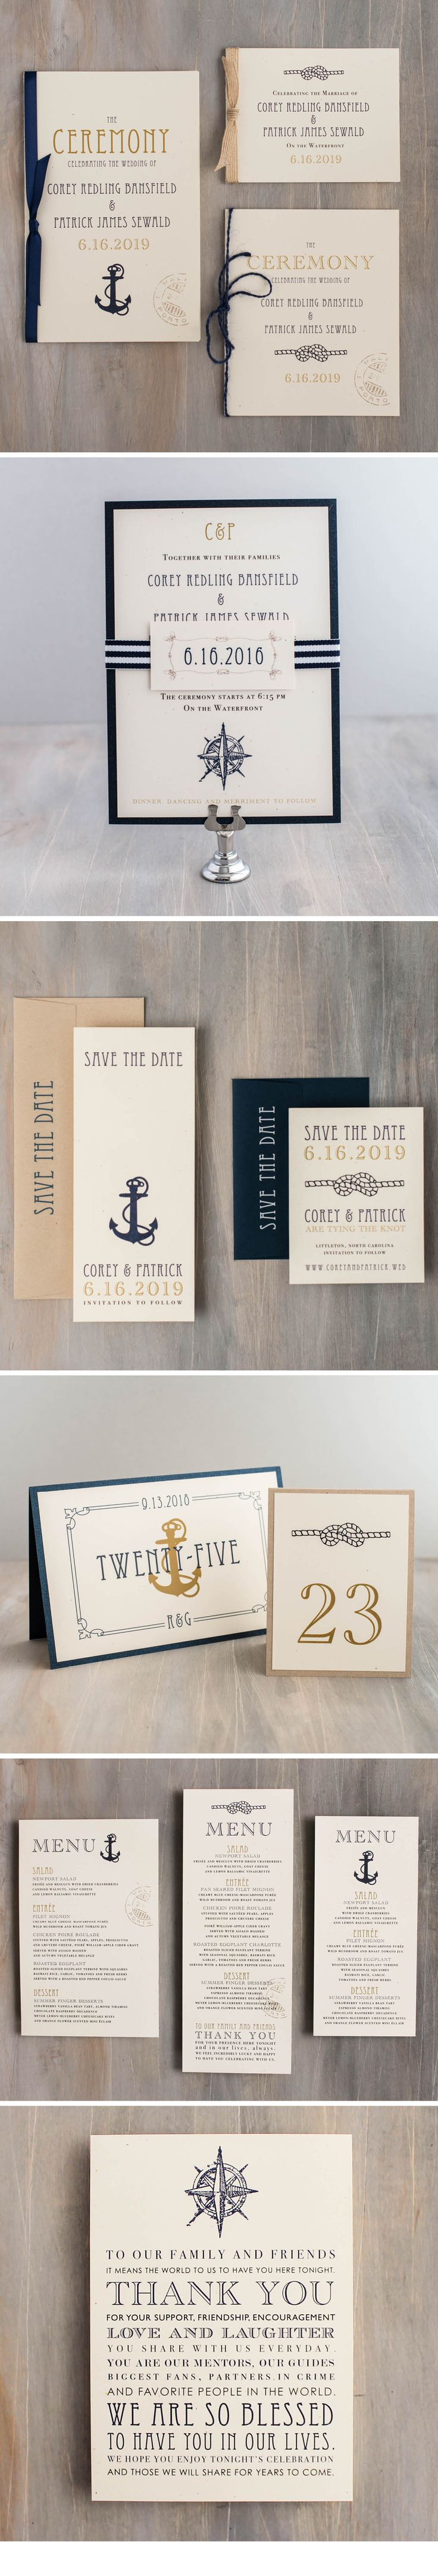 cruise wedding save the date announcement%0A From wedding invitations to ceremony programs  set the tone for your  nautical themed wedding day